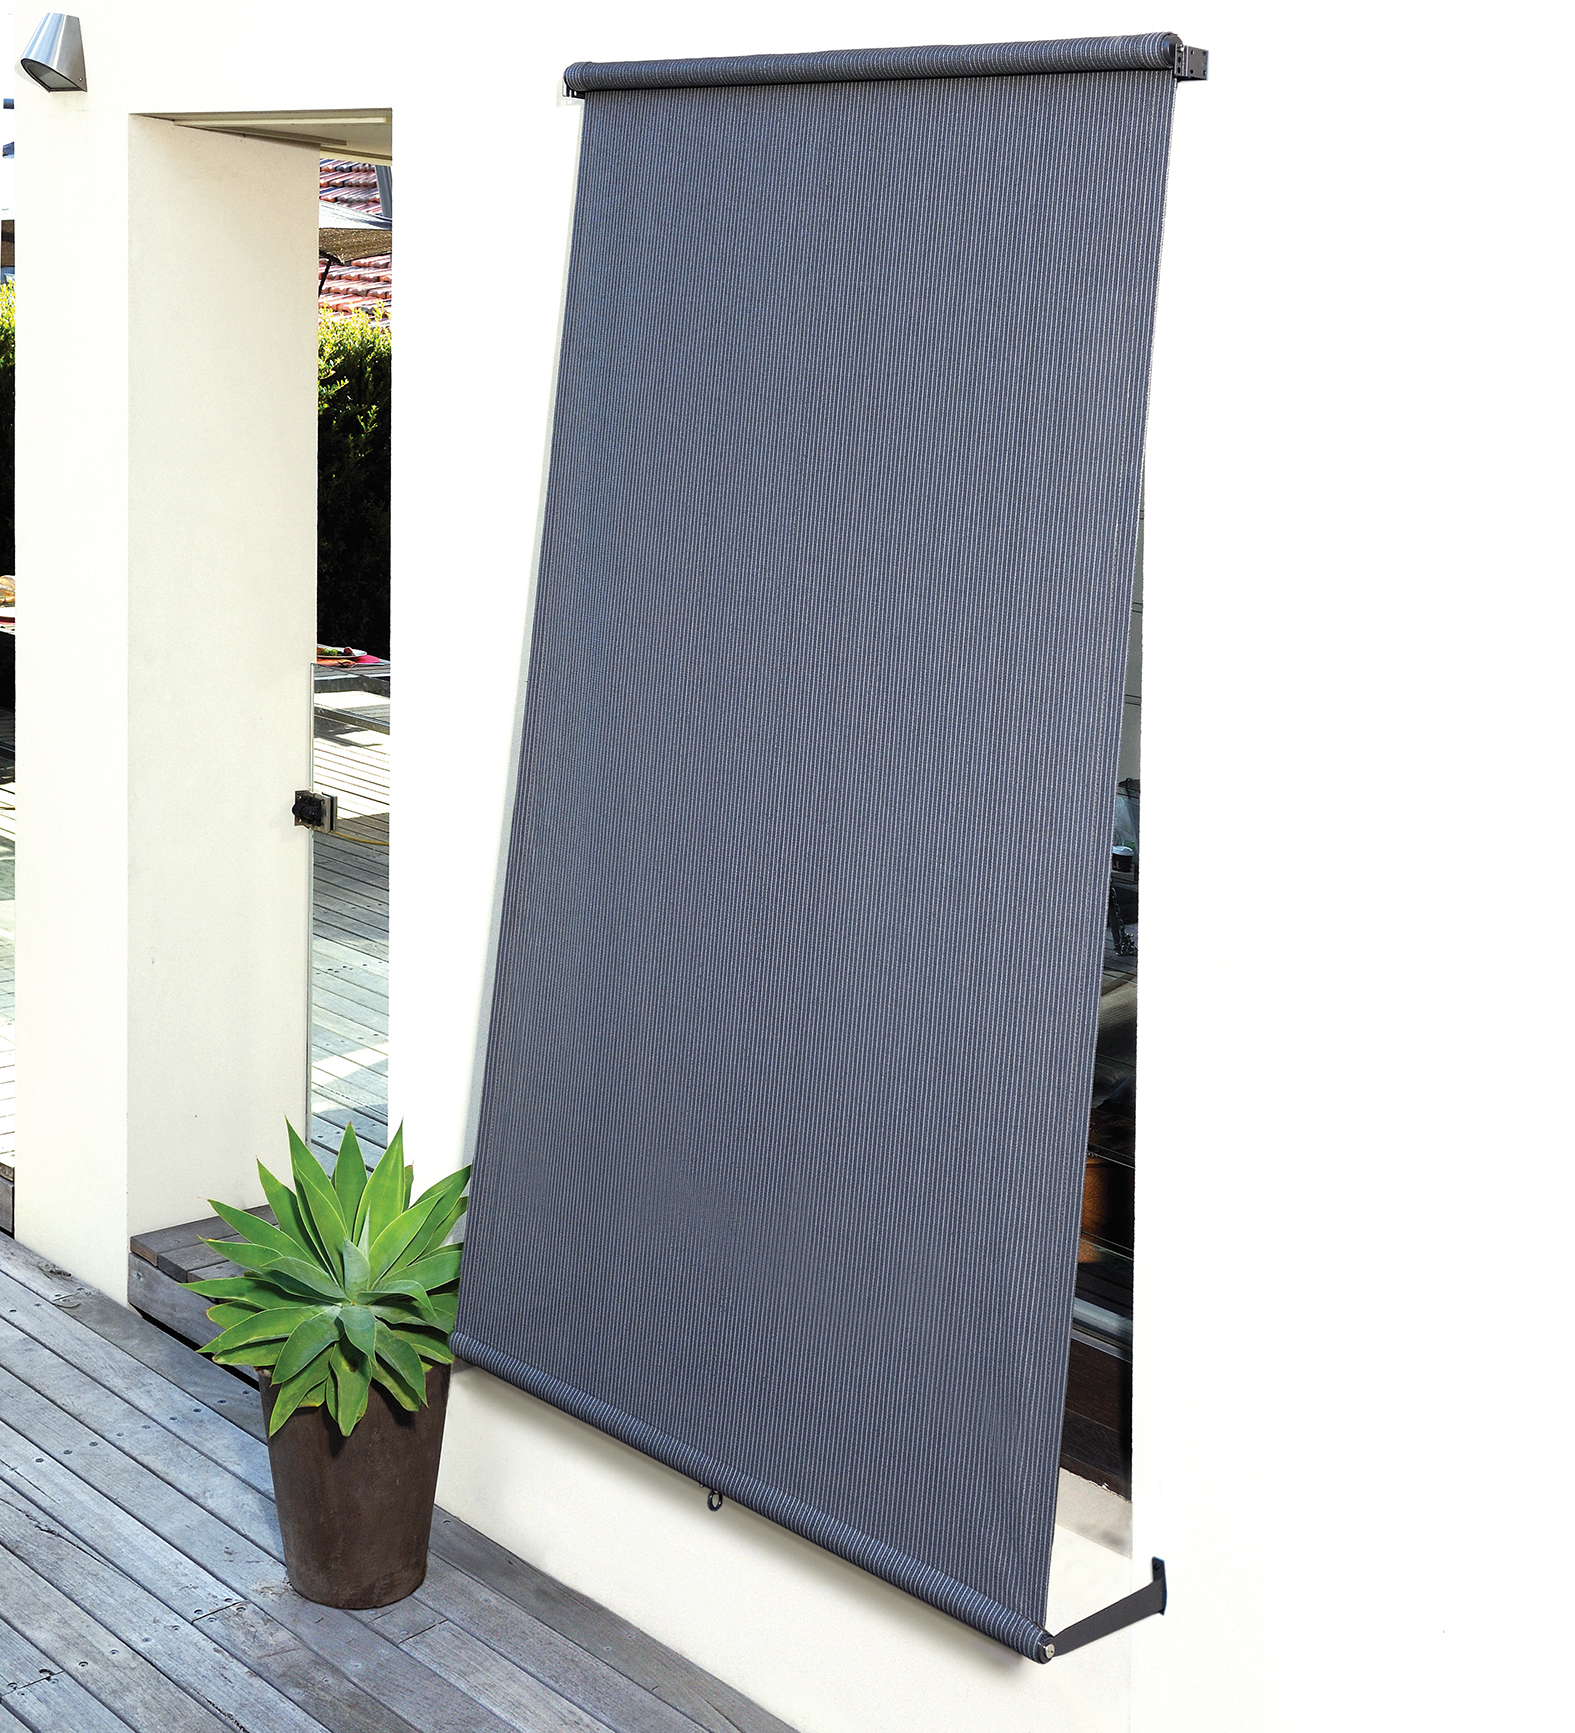 Exterior retractable blinds coolaroo - Coolaroo exterior retractable window shades ...